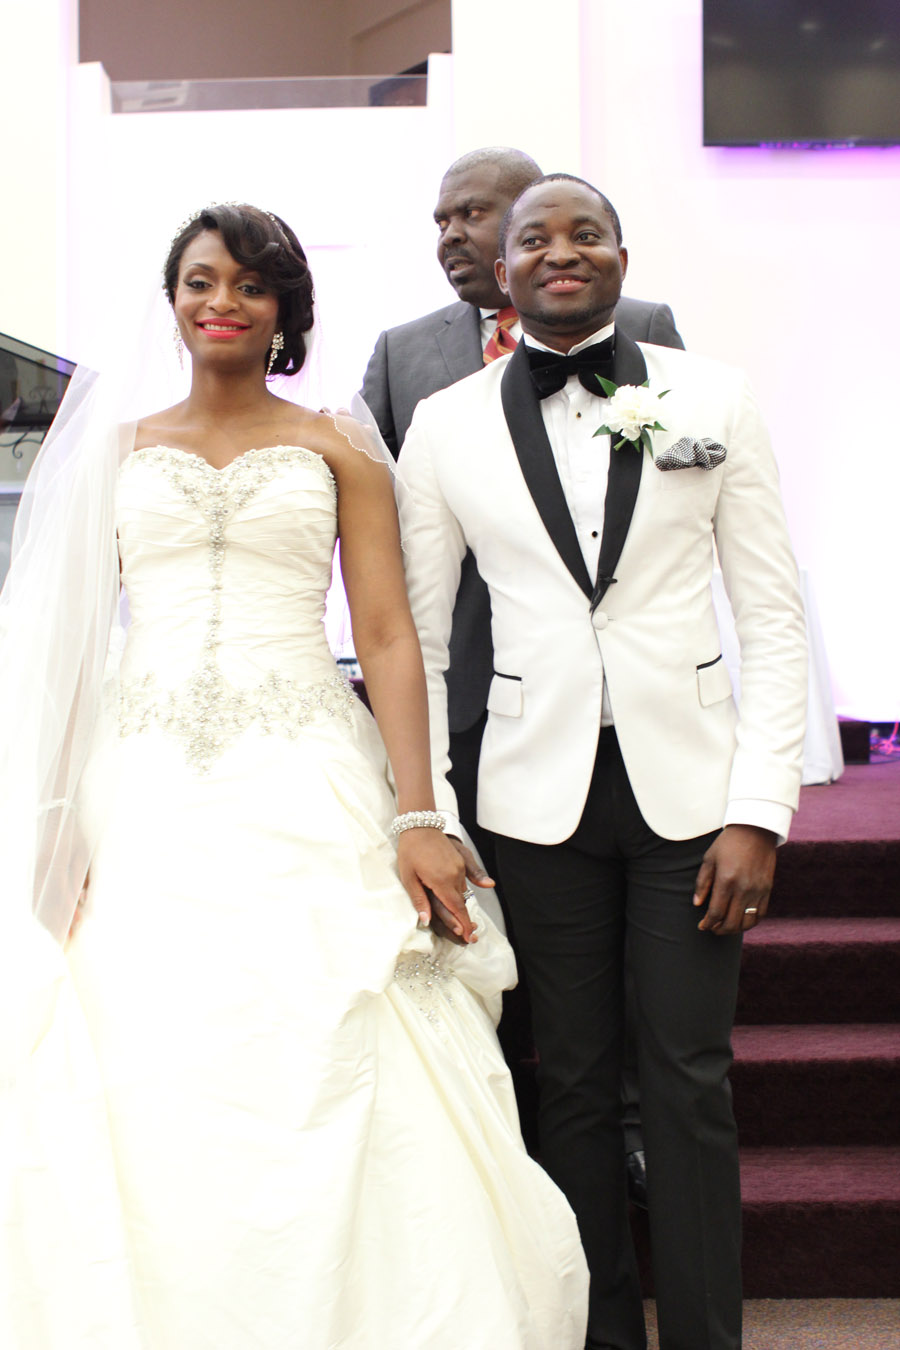 Chika + Siji Wedding Ceremony at RCCG King's Court Chapel